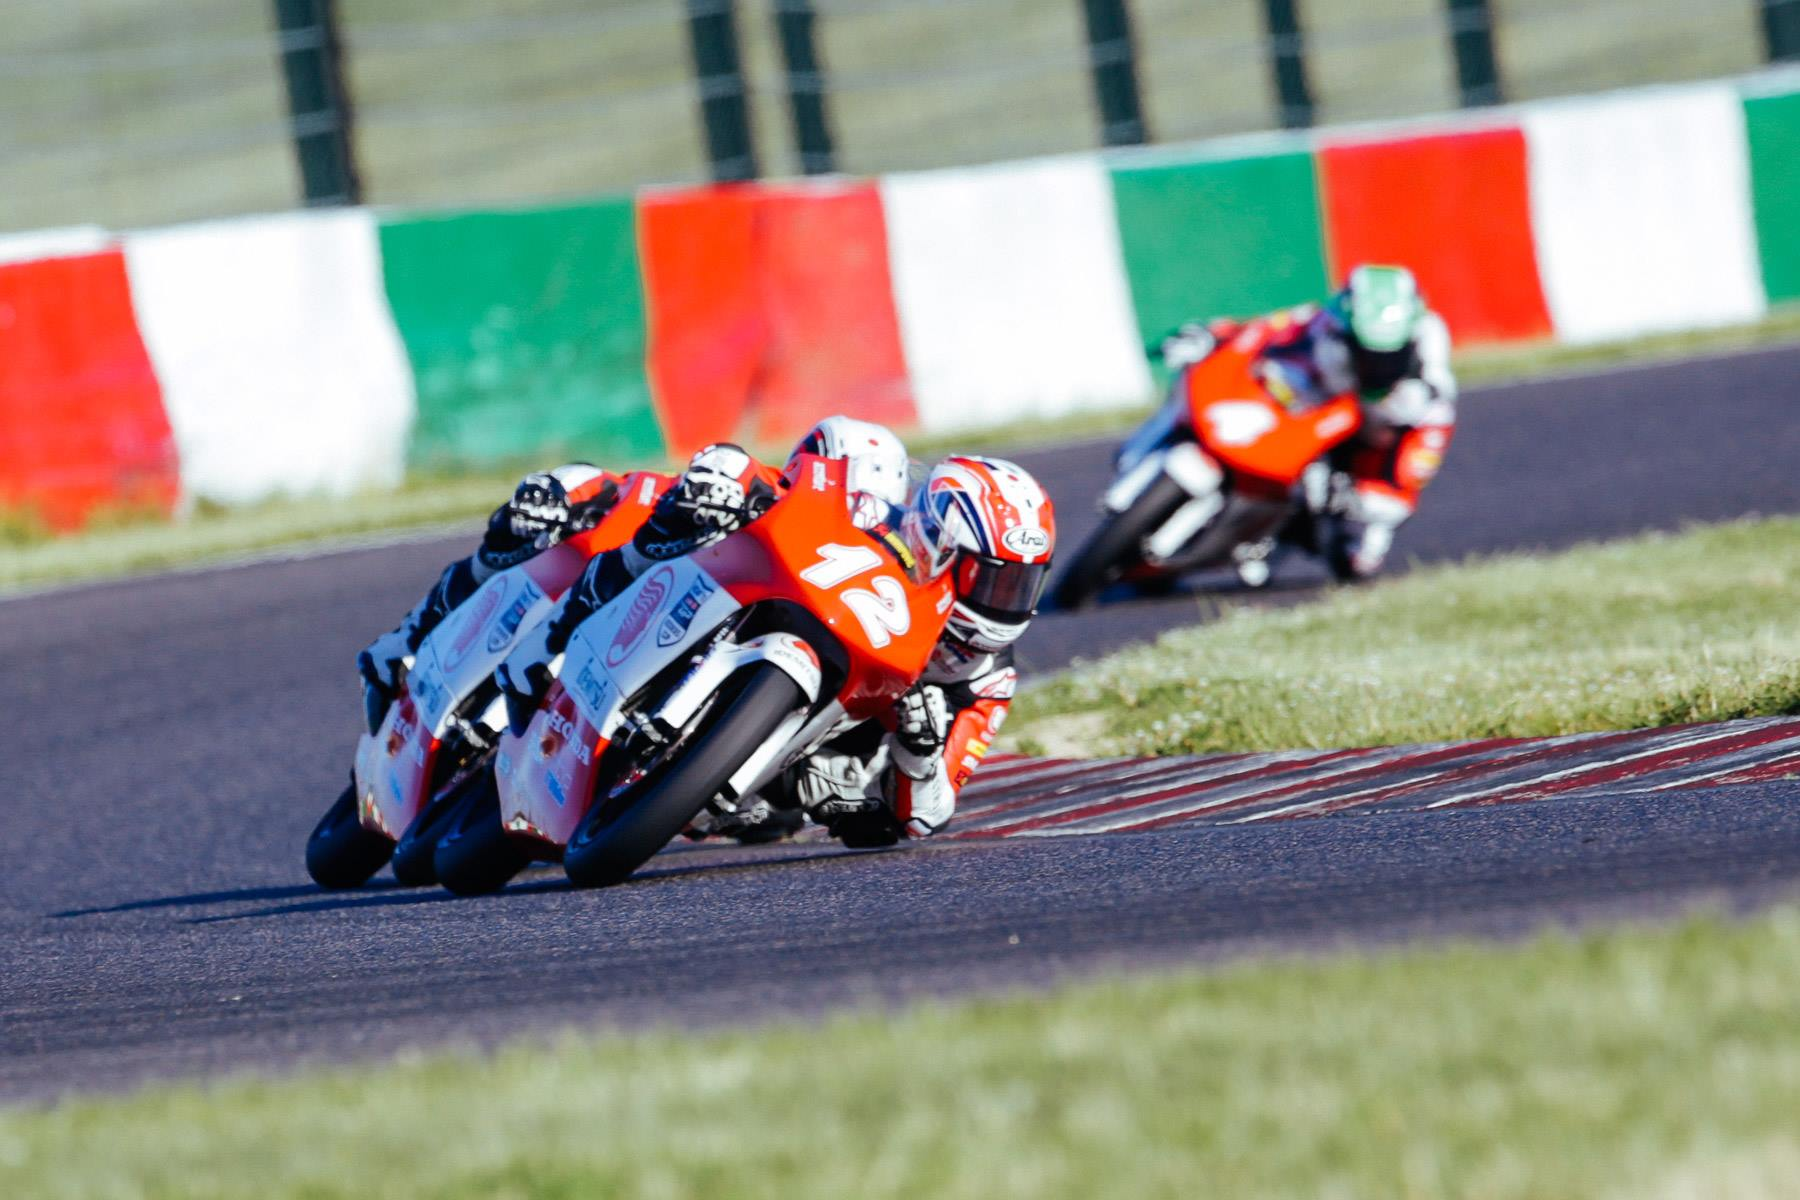 Preview: The Asia Talent Cup heads to the legendary Suzuka for round 3! 🇯🇵  #RoadToMotoGP 📽 https://t.co/hJa4i0FRG7 https://t.co/dVALz6ivZC